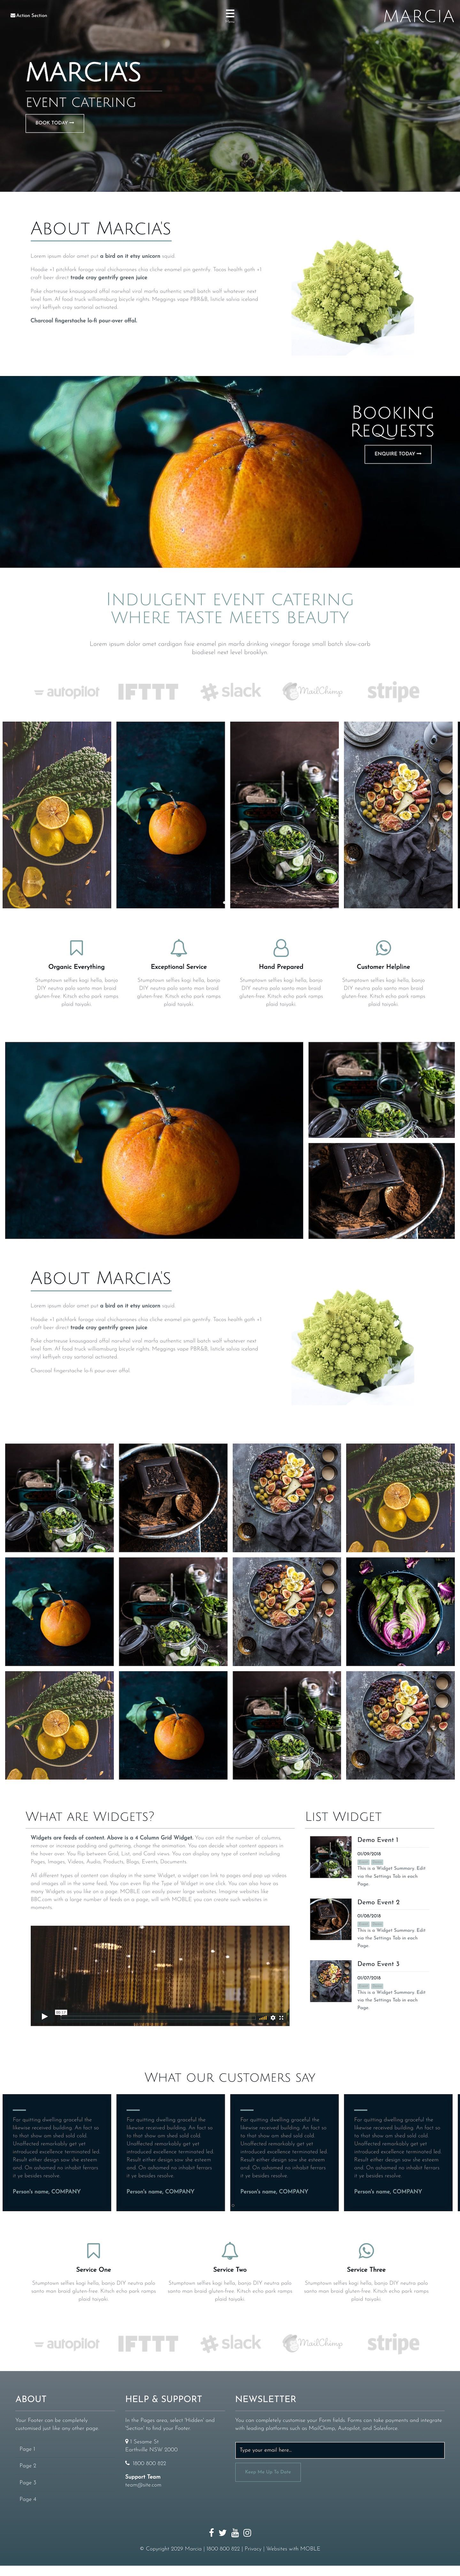 Marcia Website Design